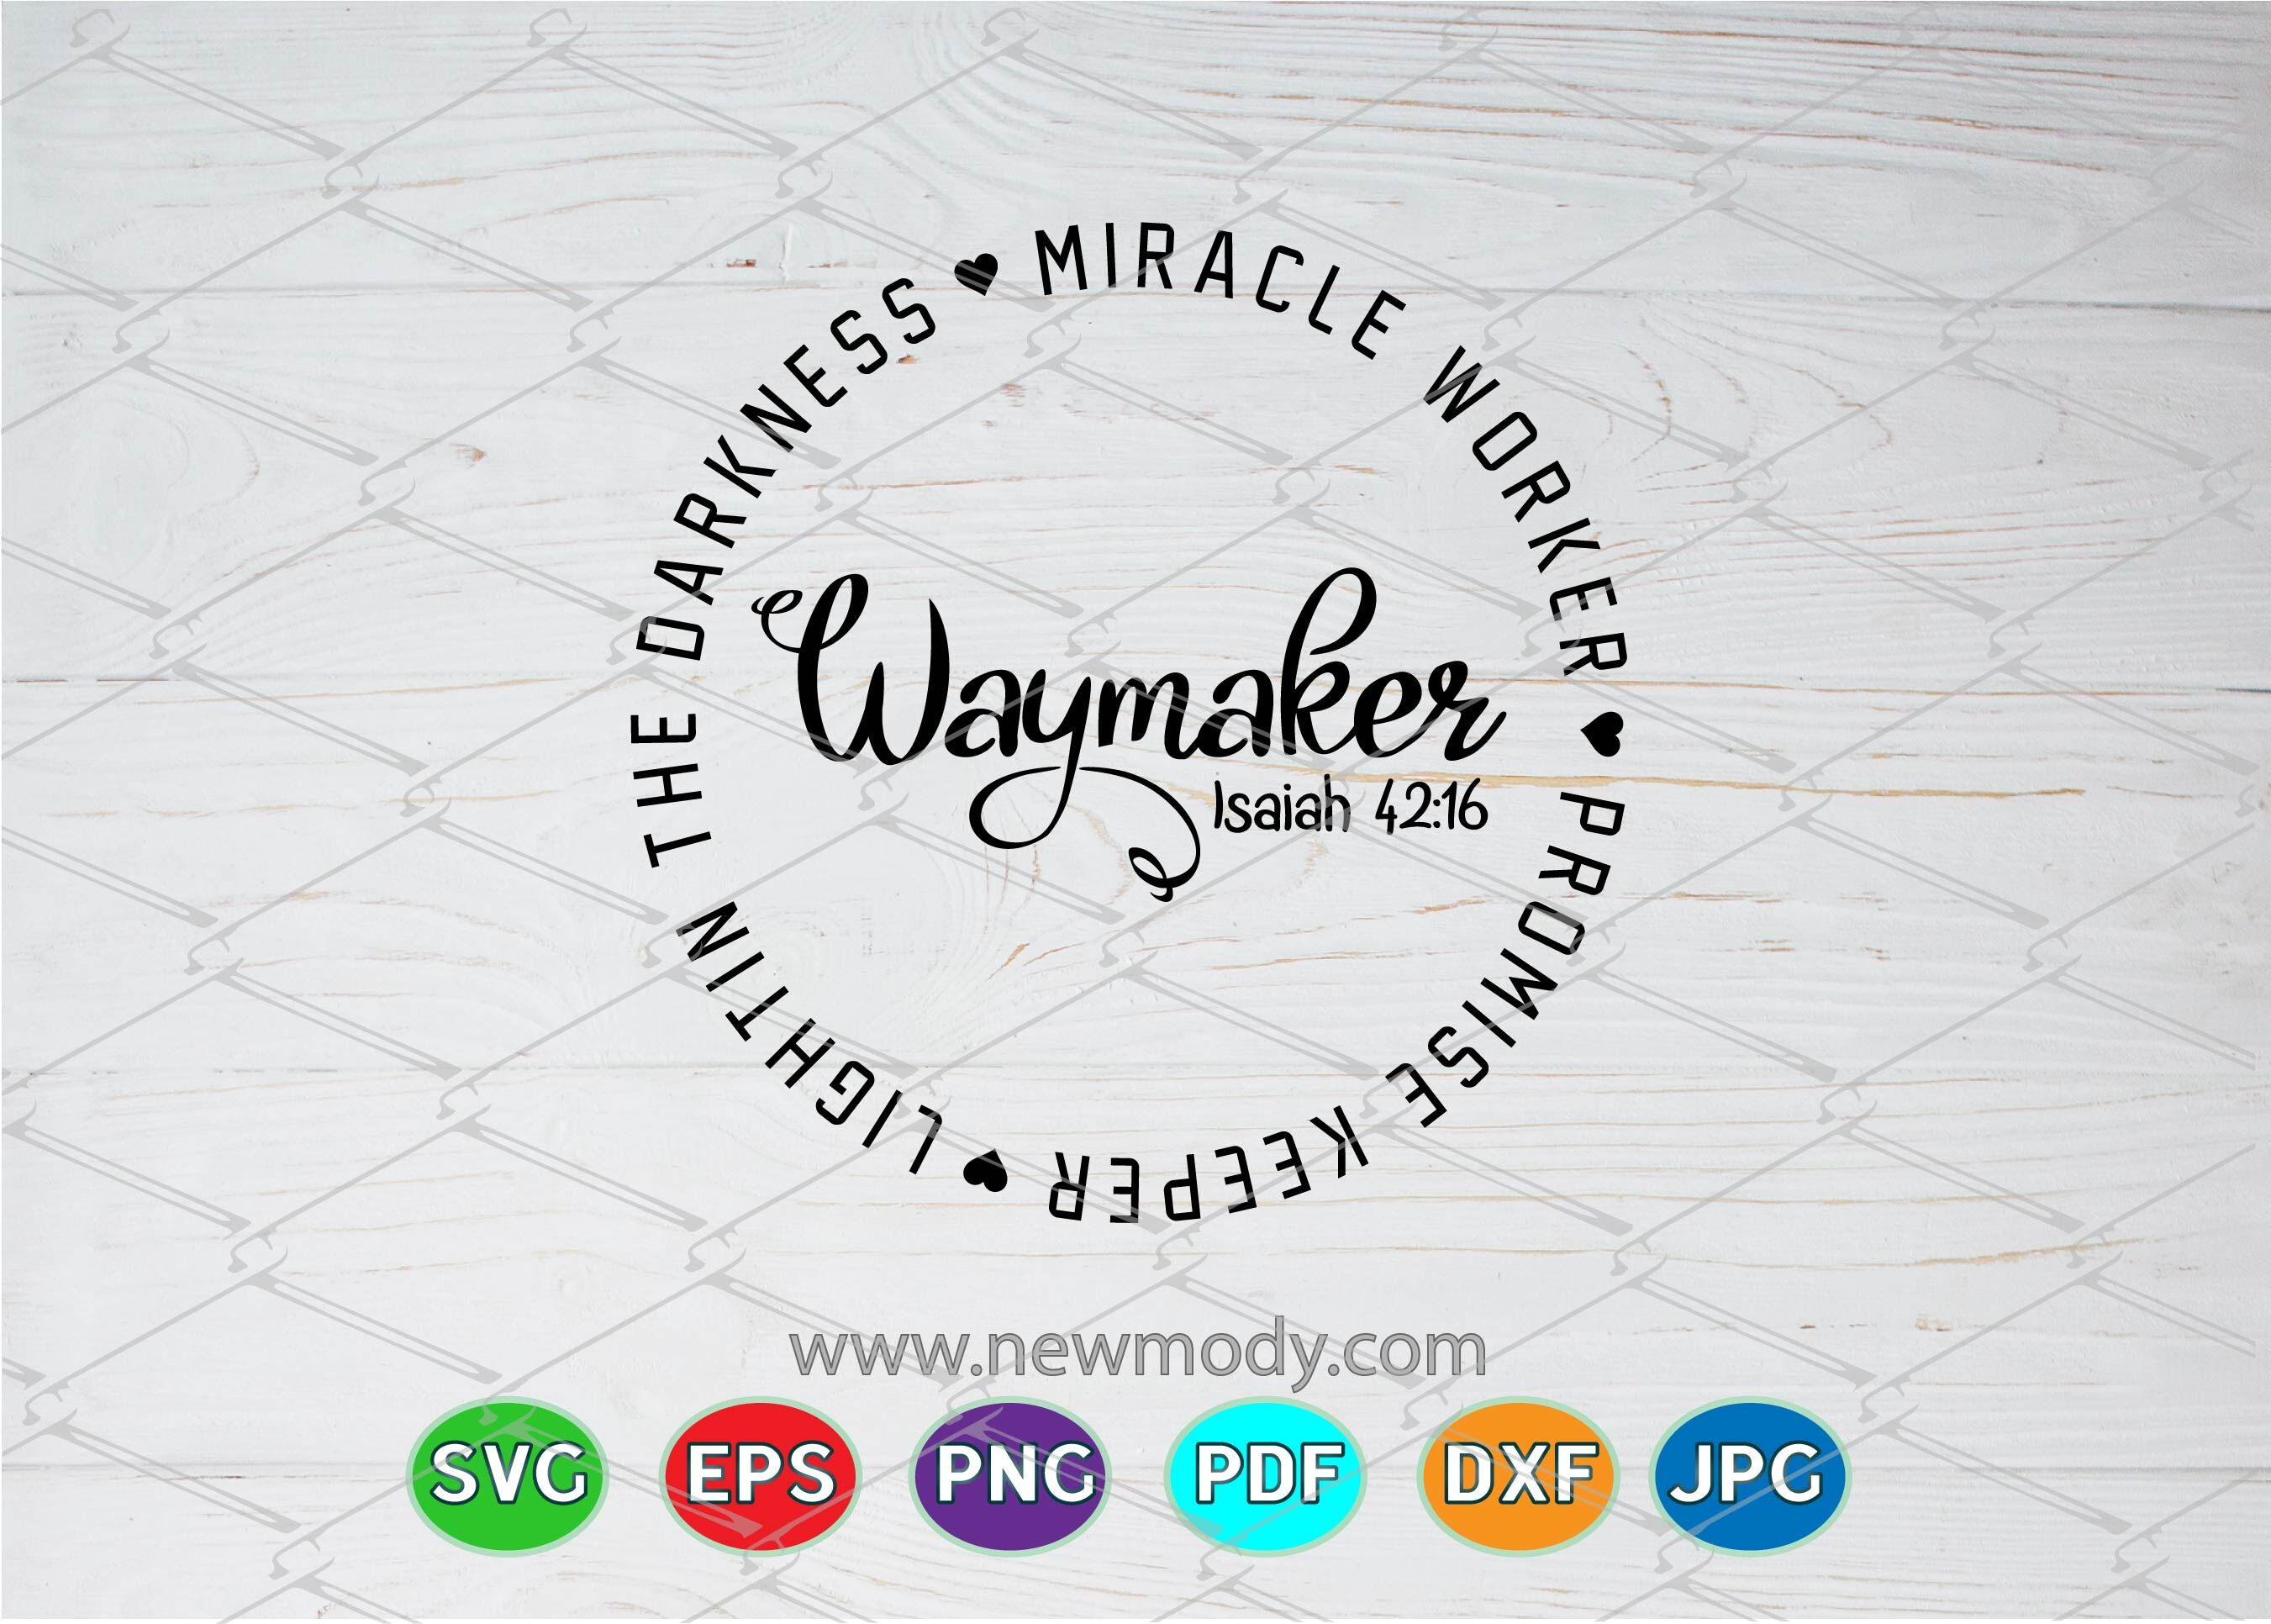 Waymaker Svg Miracle Worker Svg Promise Keeper Svg By Amittaart Thehungryjpeg Com